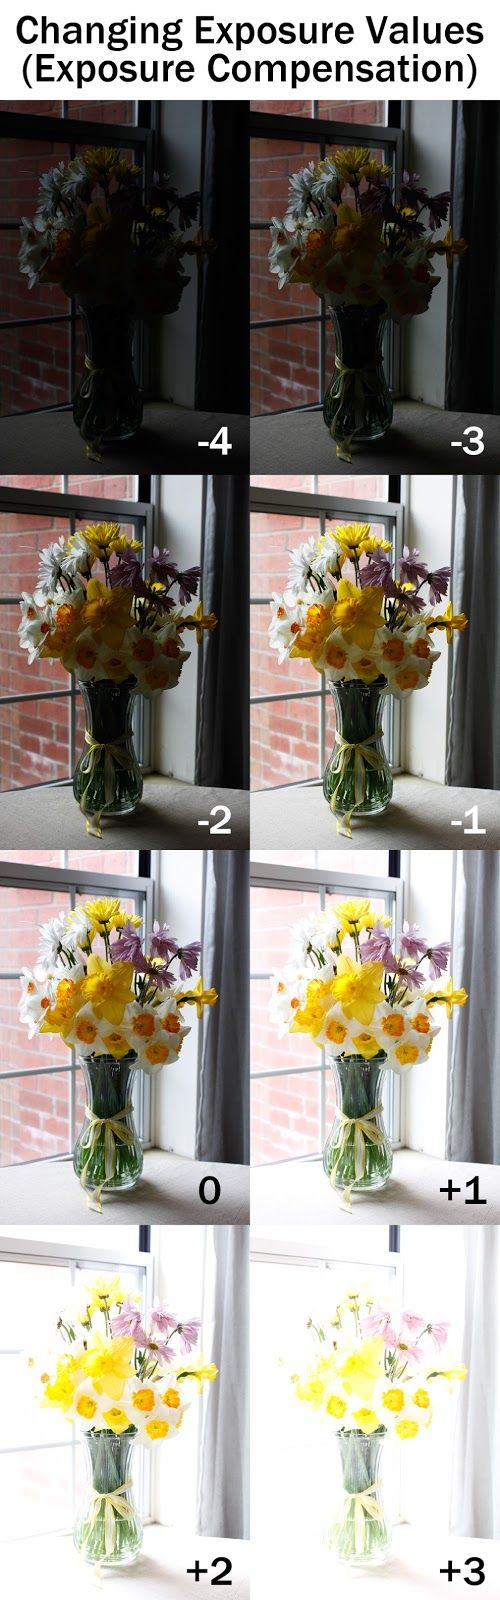 Changing Exposure Values using Exposure Compensation | Boost Your Photography